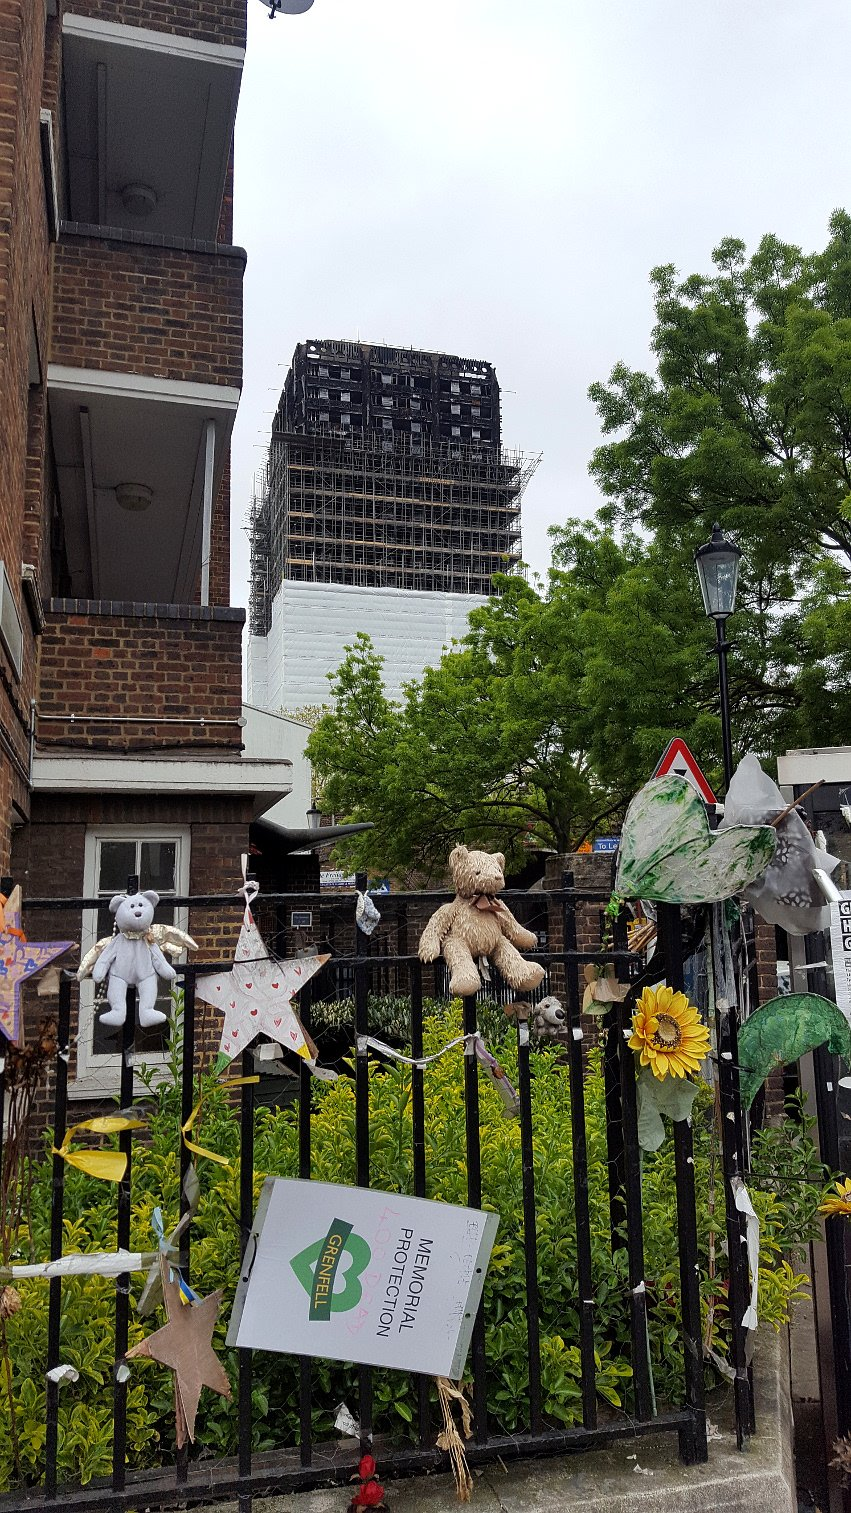 Ar Cj Walsh Consultant Architect Fire Engineer Technical Solar Panel Circuit The Heads On Community Colour Photograph Showing Grenfell Tower In Background Undergoing An Almost Complete Cover Up With Foreground Mementos Of